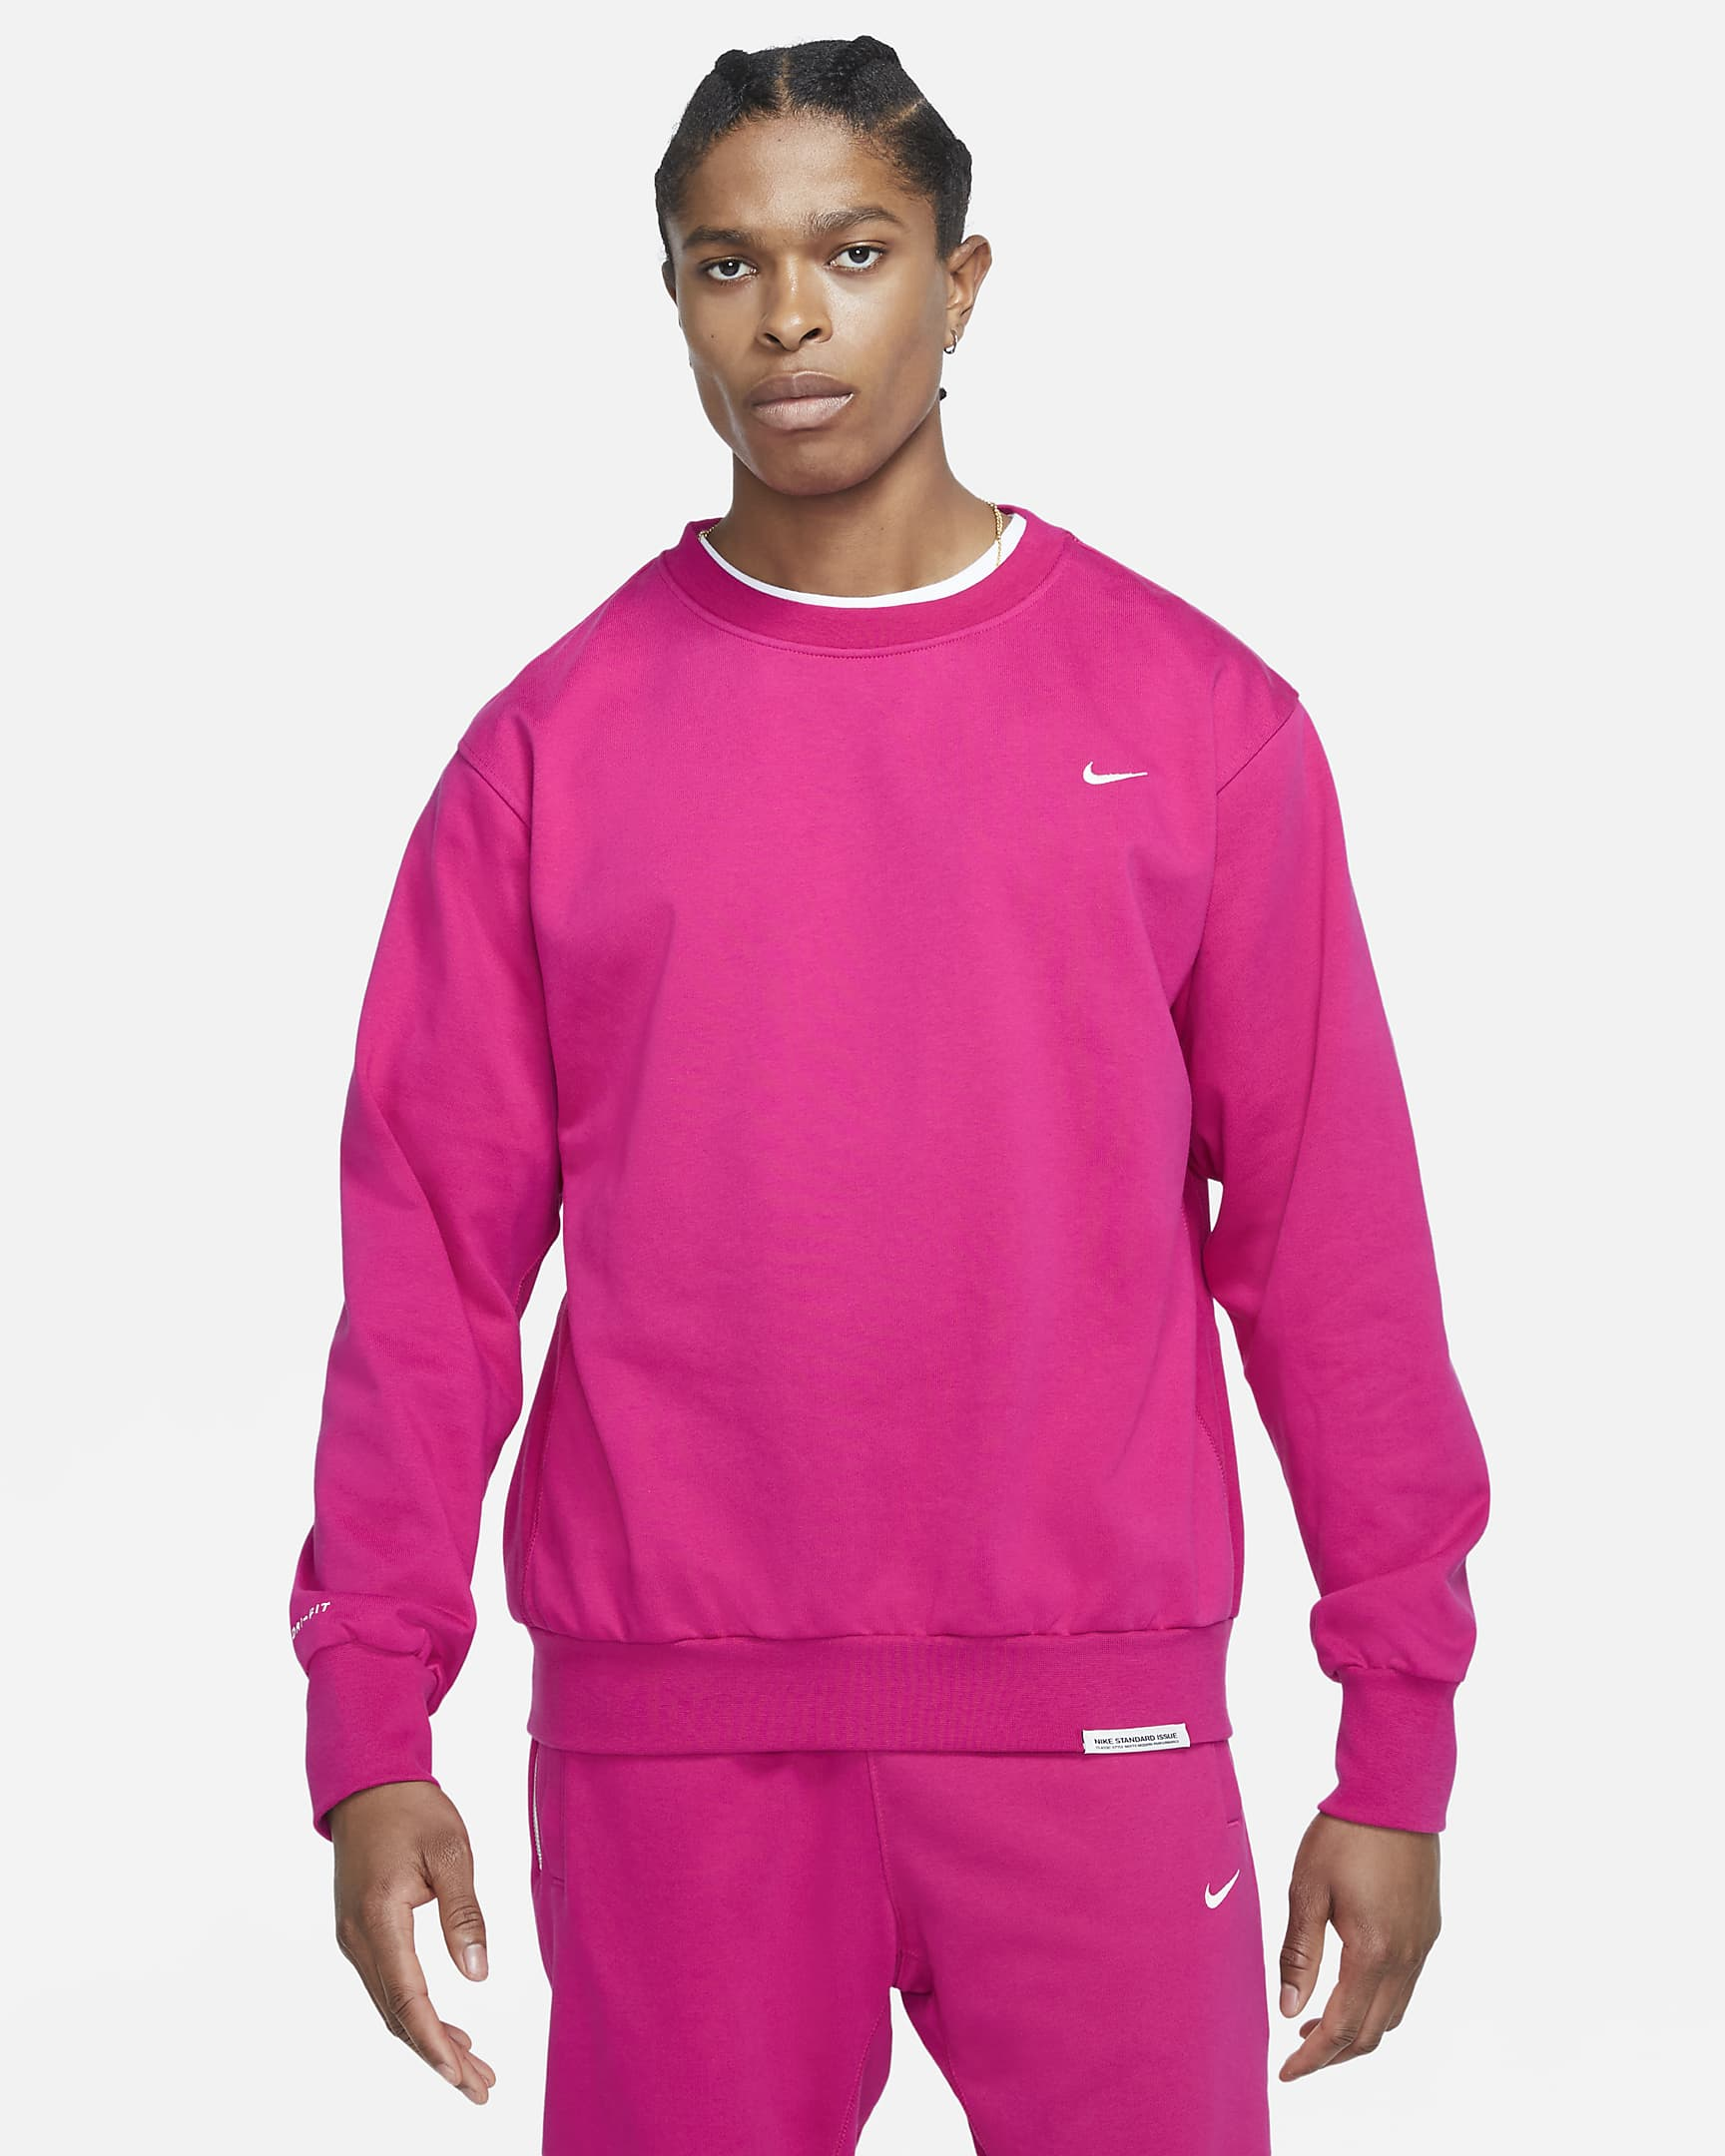 standard-issue-mens-basketball-crew-0s90Qv